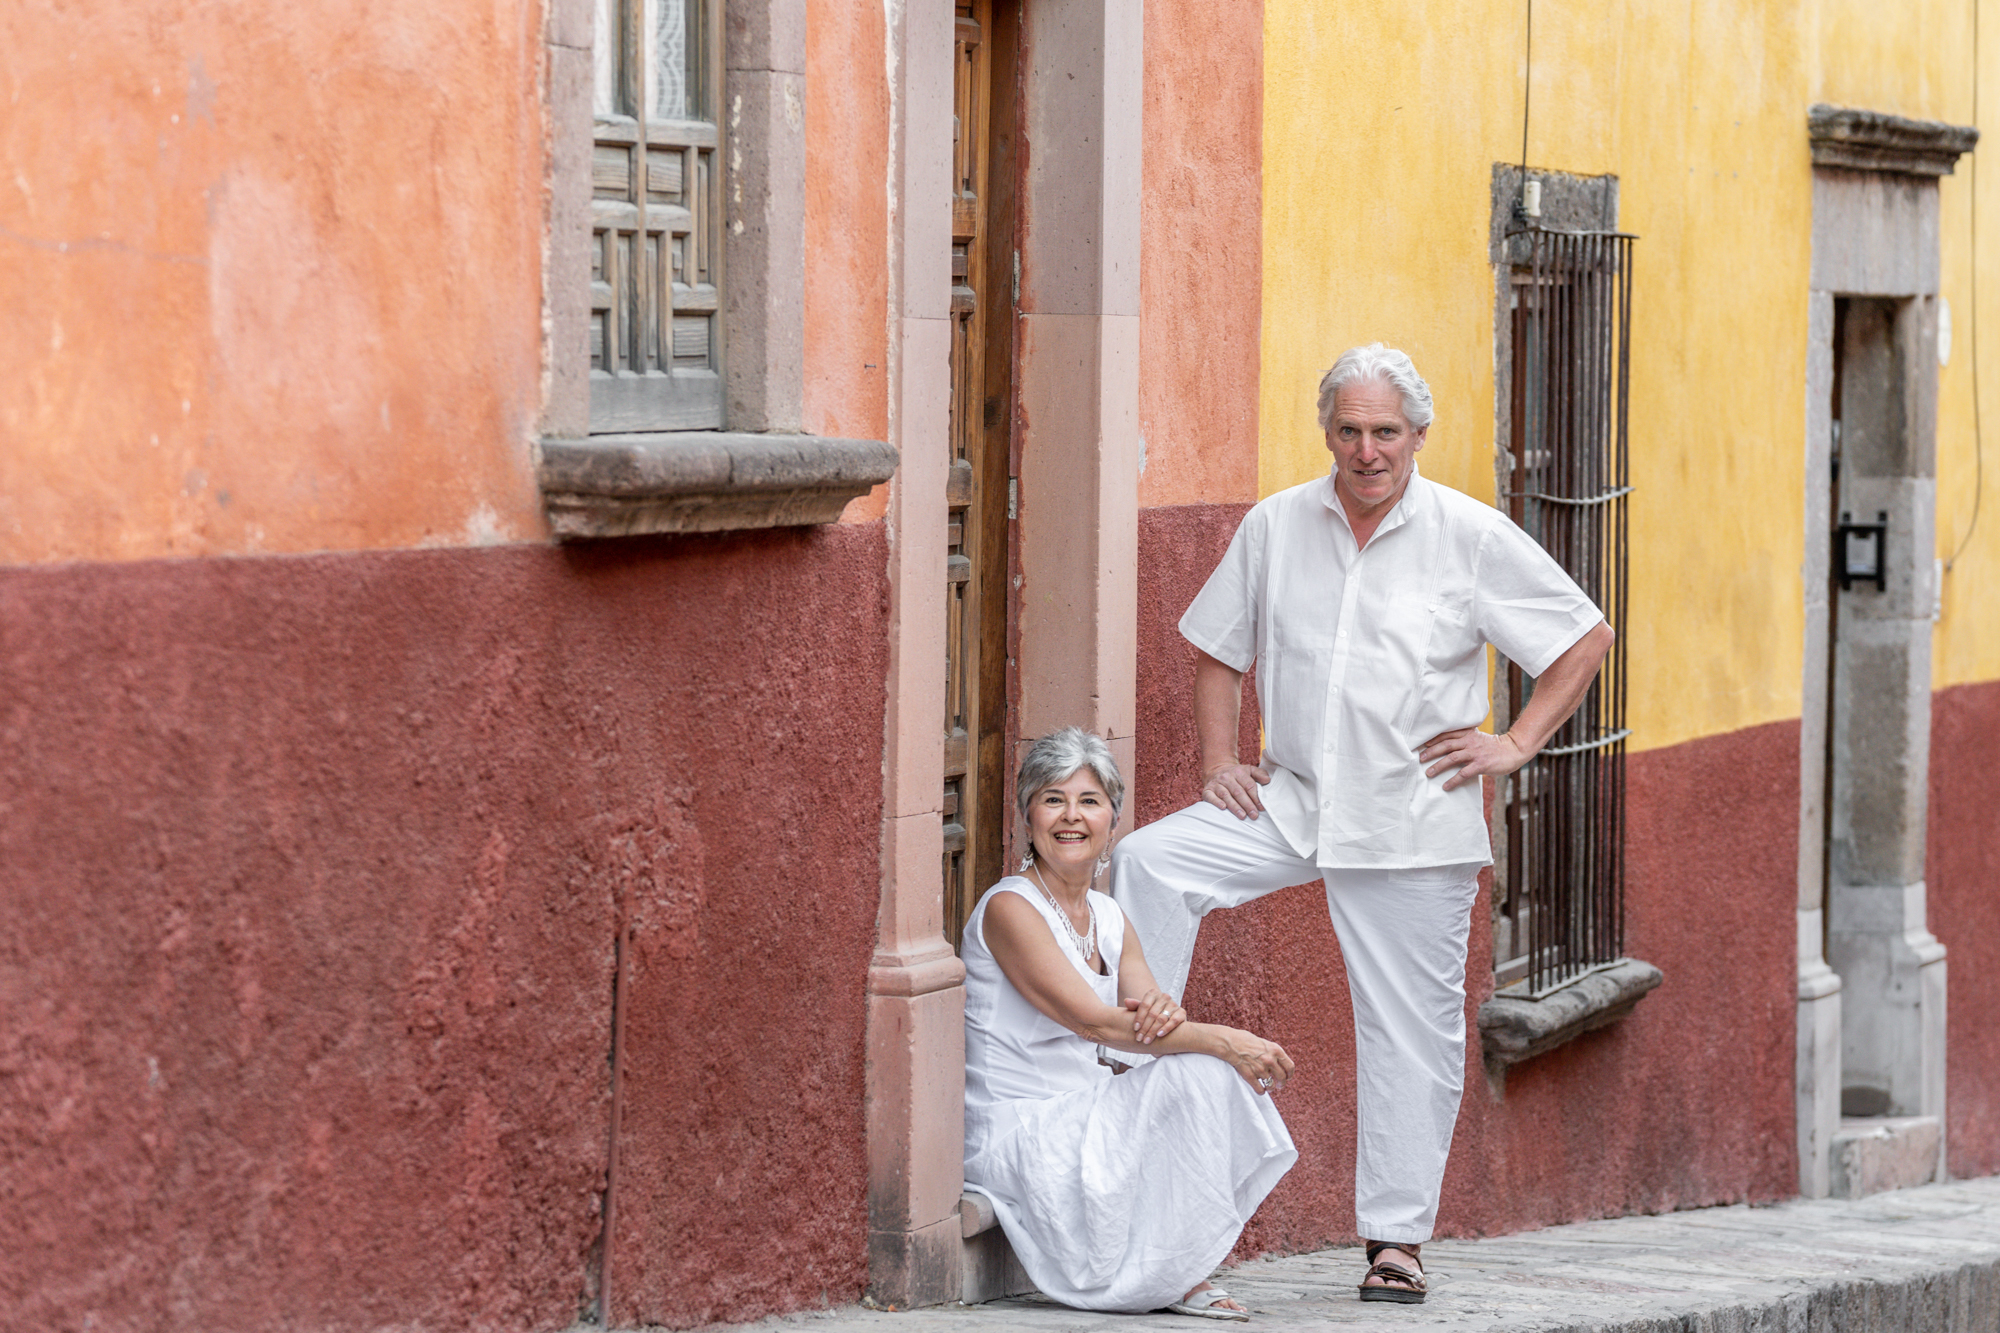 Photoshoot session in San Miguel de Allende with Suzanne and Leo-50.jpg